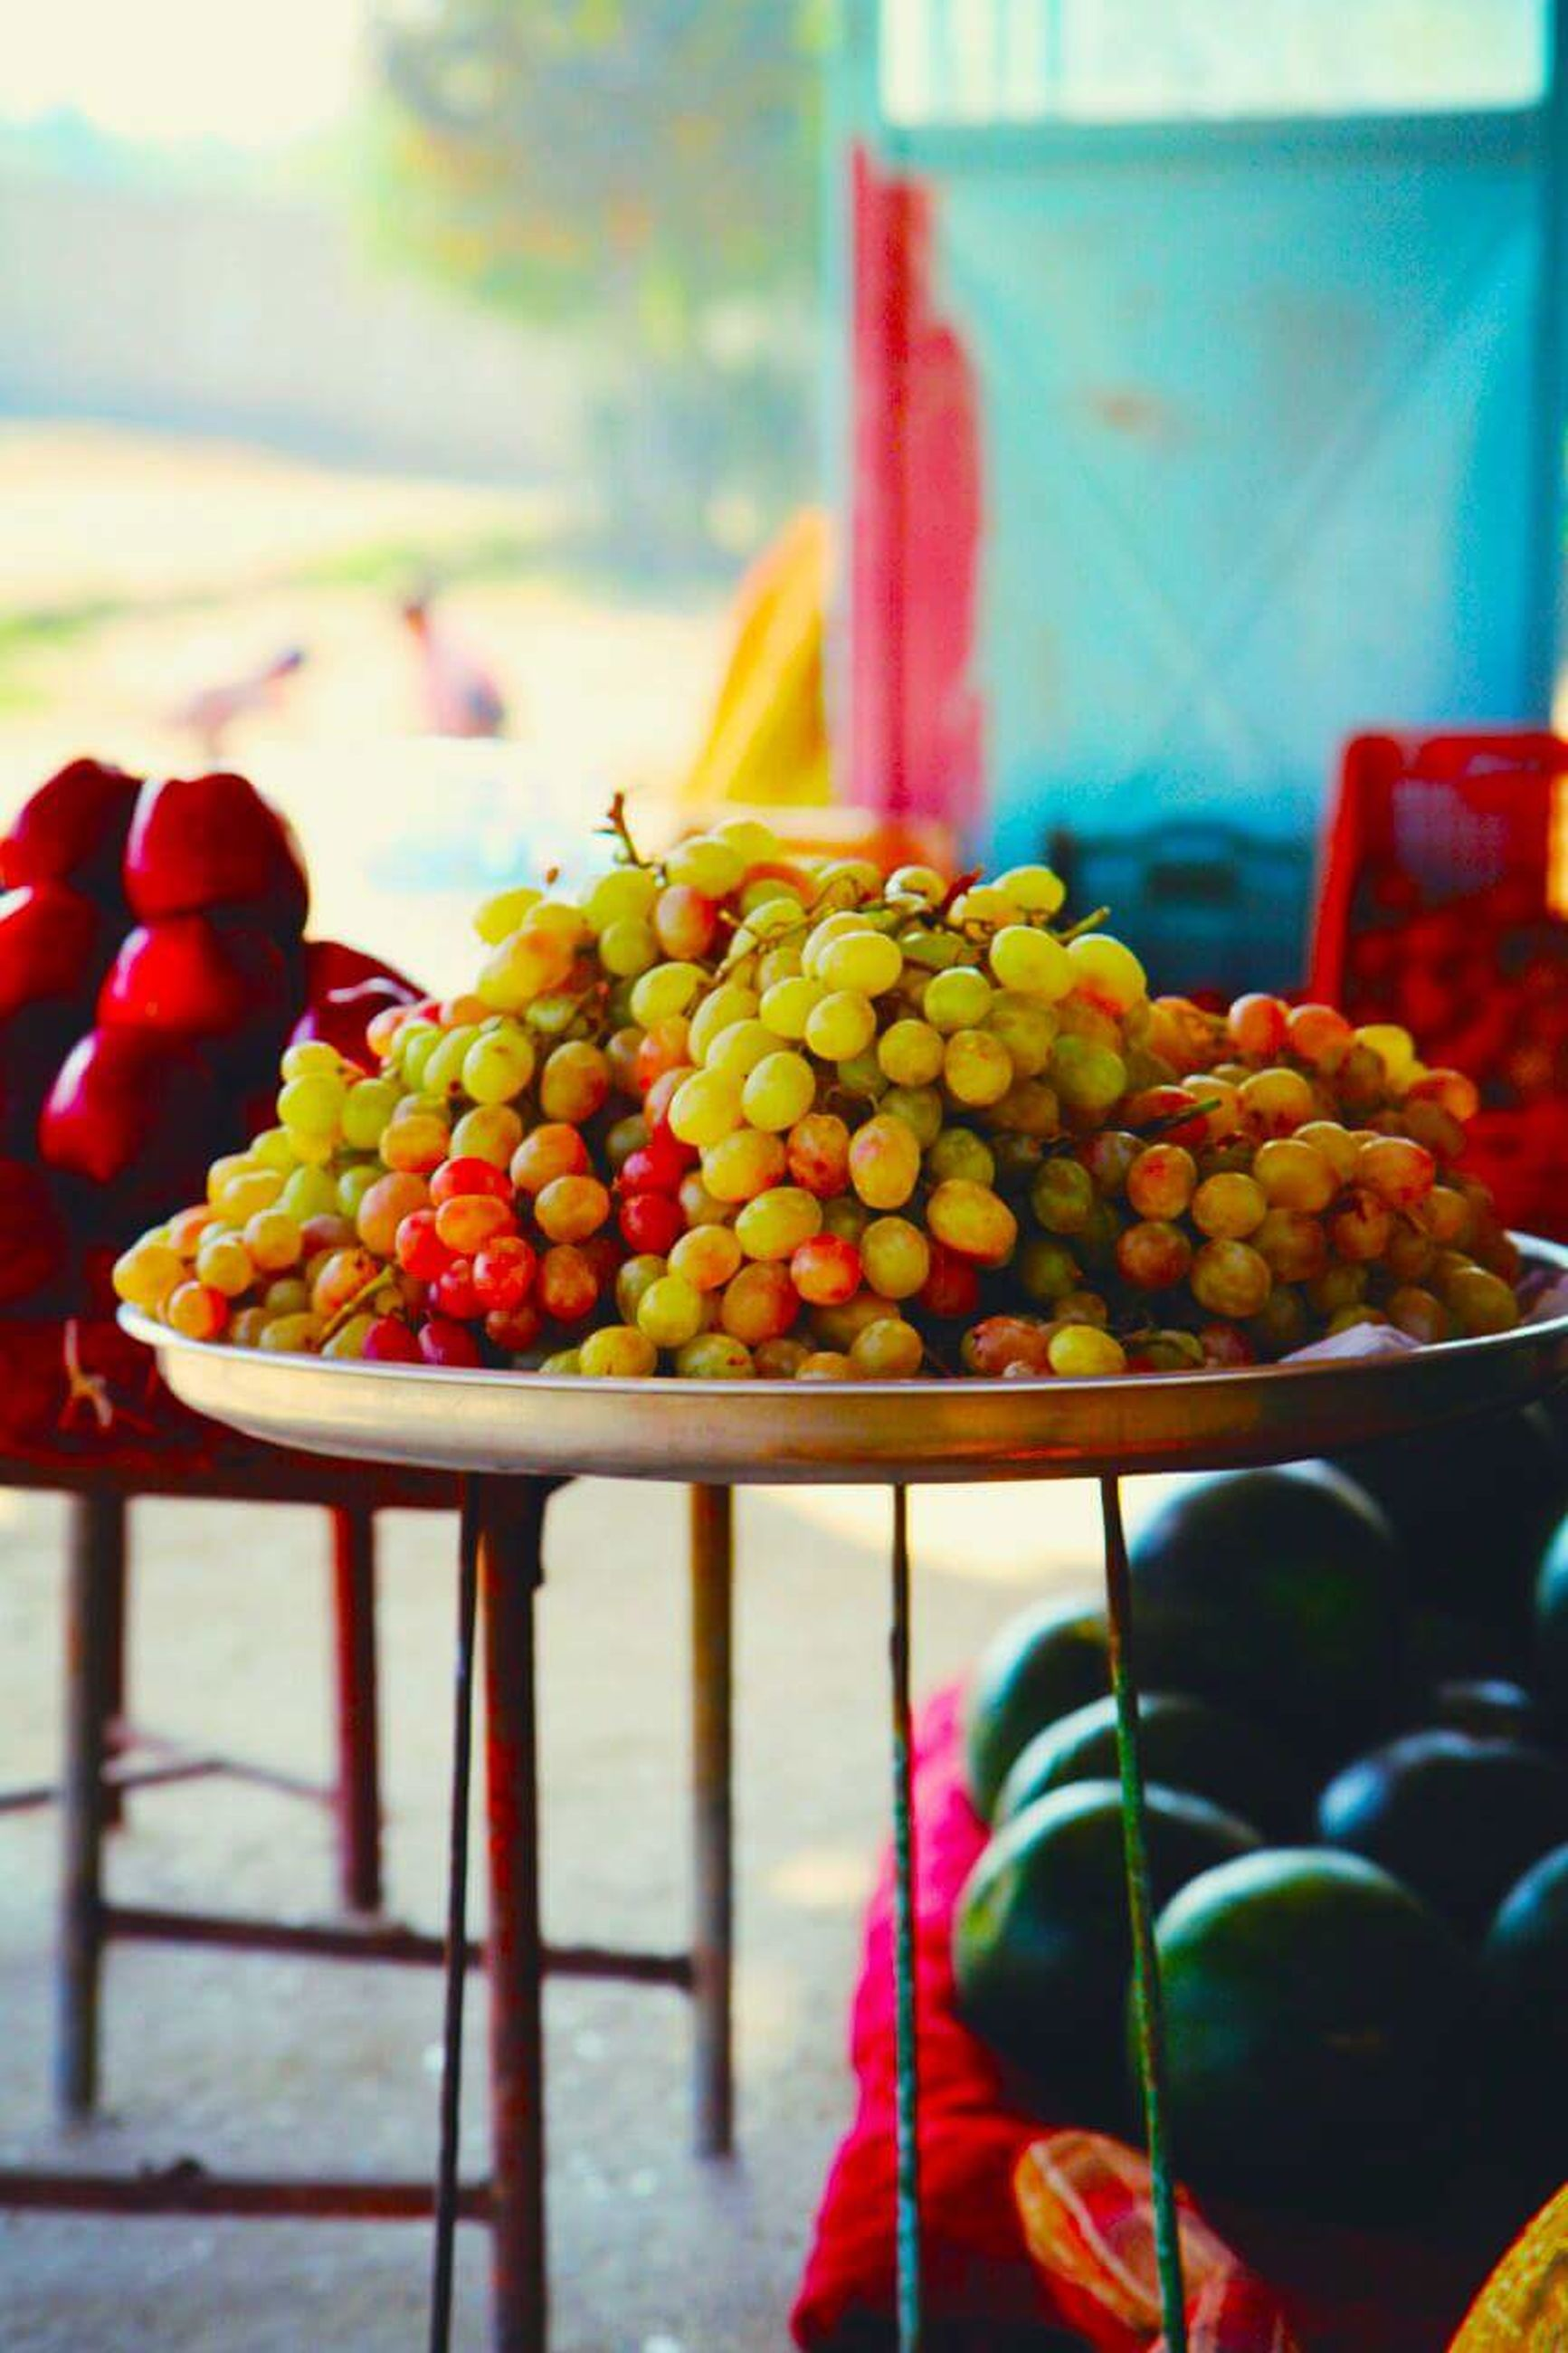 fruit, food, freshness, healthy eating, focus on foreground, food and drink, close-up, grape, outdoors, no people, day